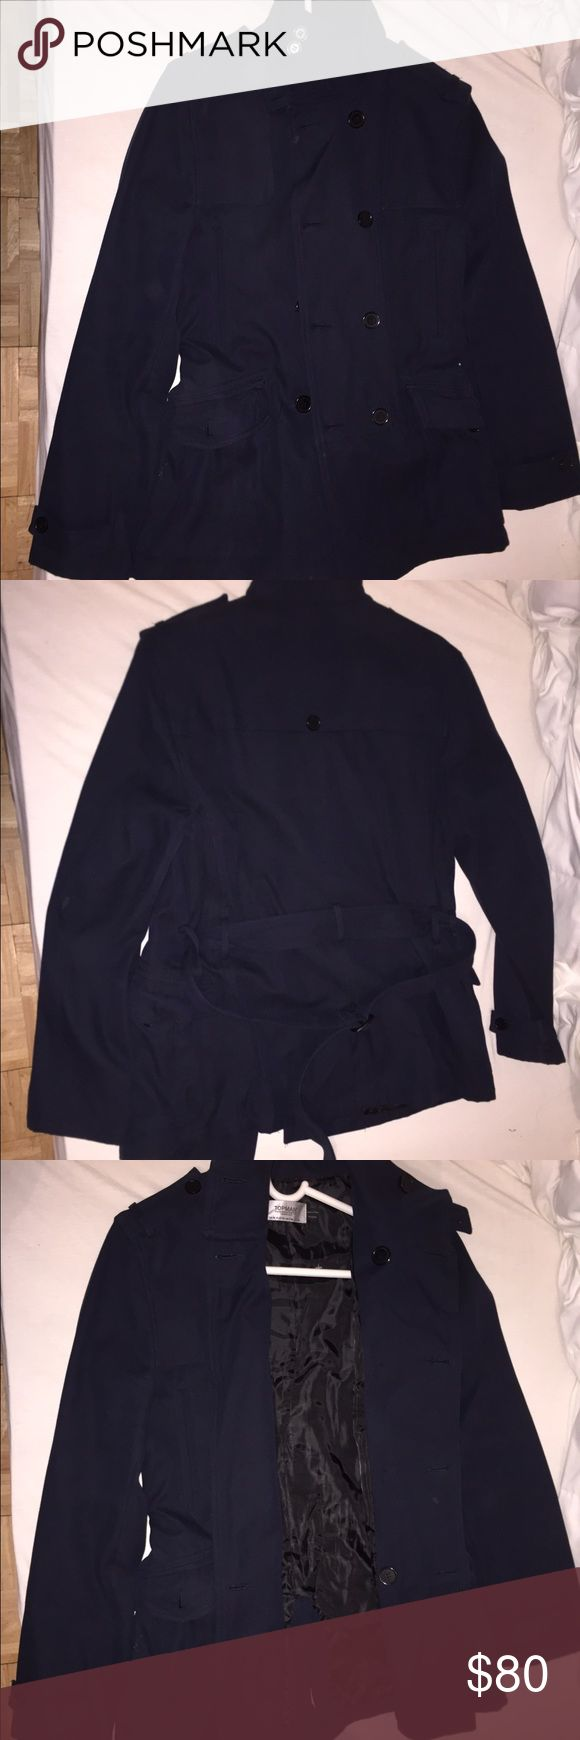 Navy blue trench coat Navy blue trench, dark in color, military shoulder straps and sits right below arms length,  great for work days or weekends! Topman Jackets & Coats Trench Coats